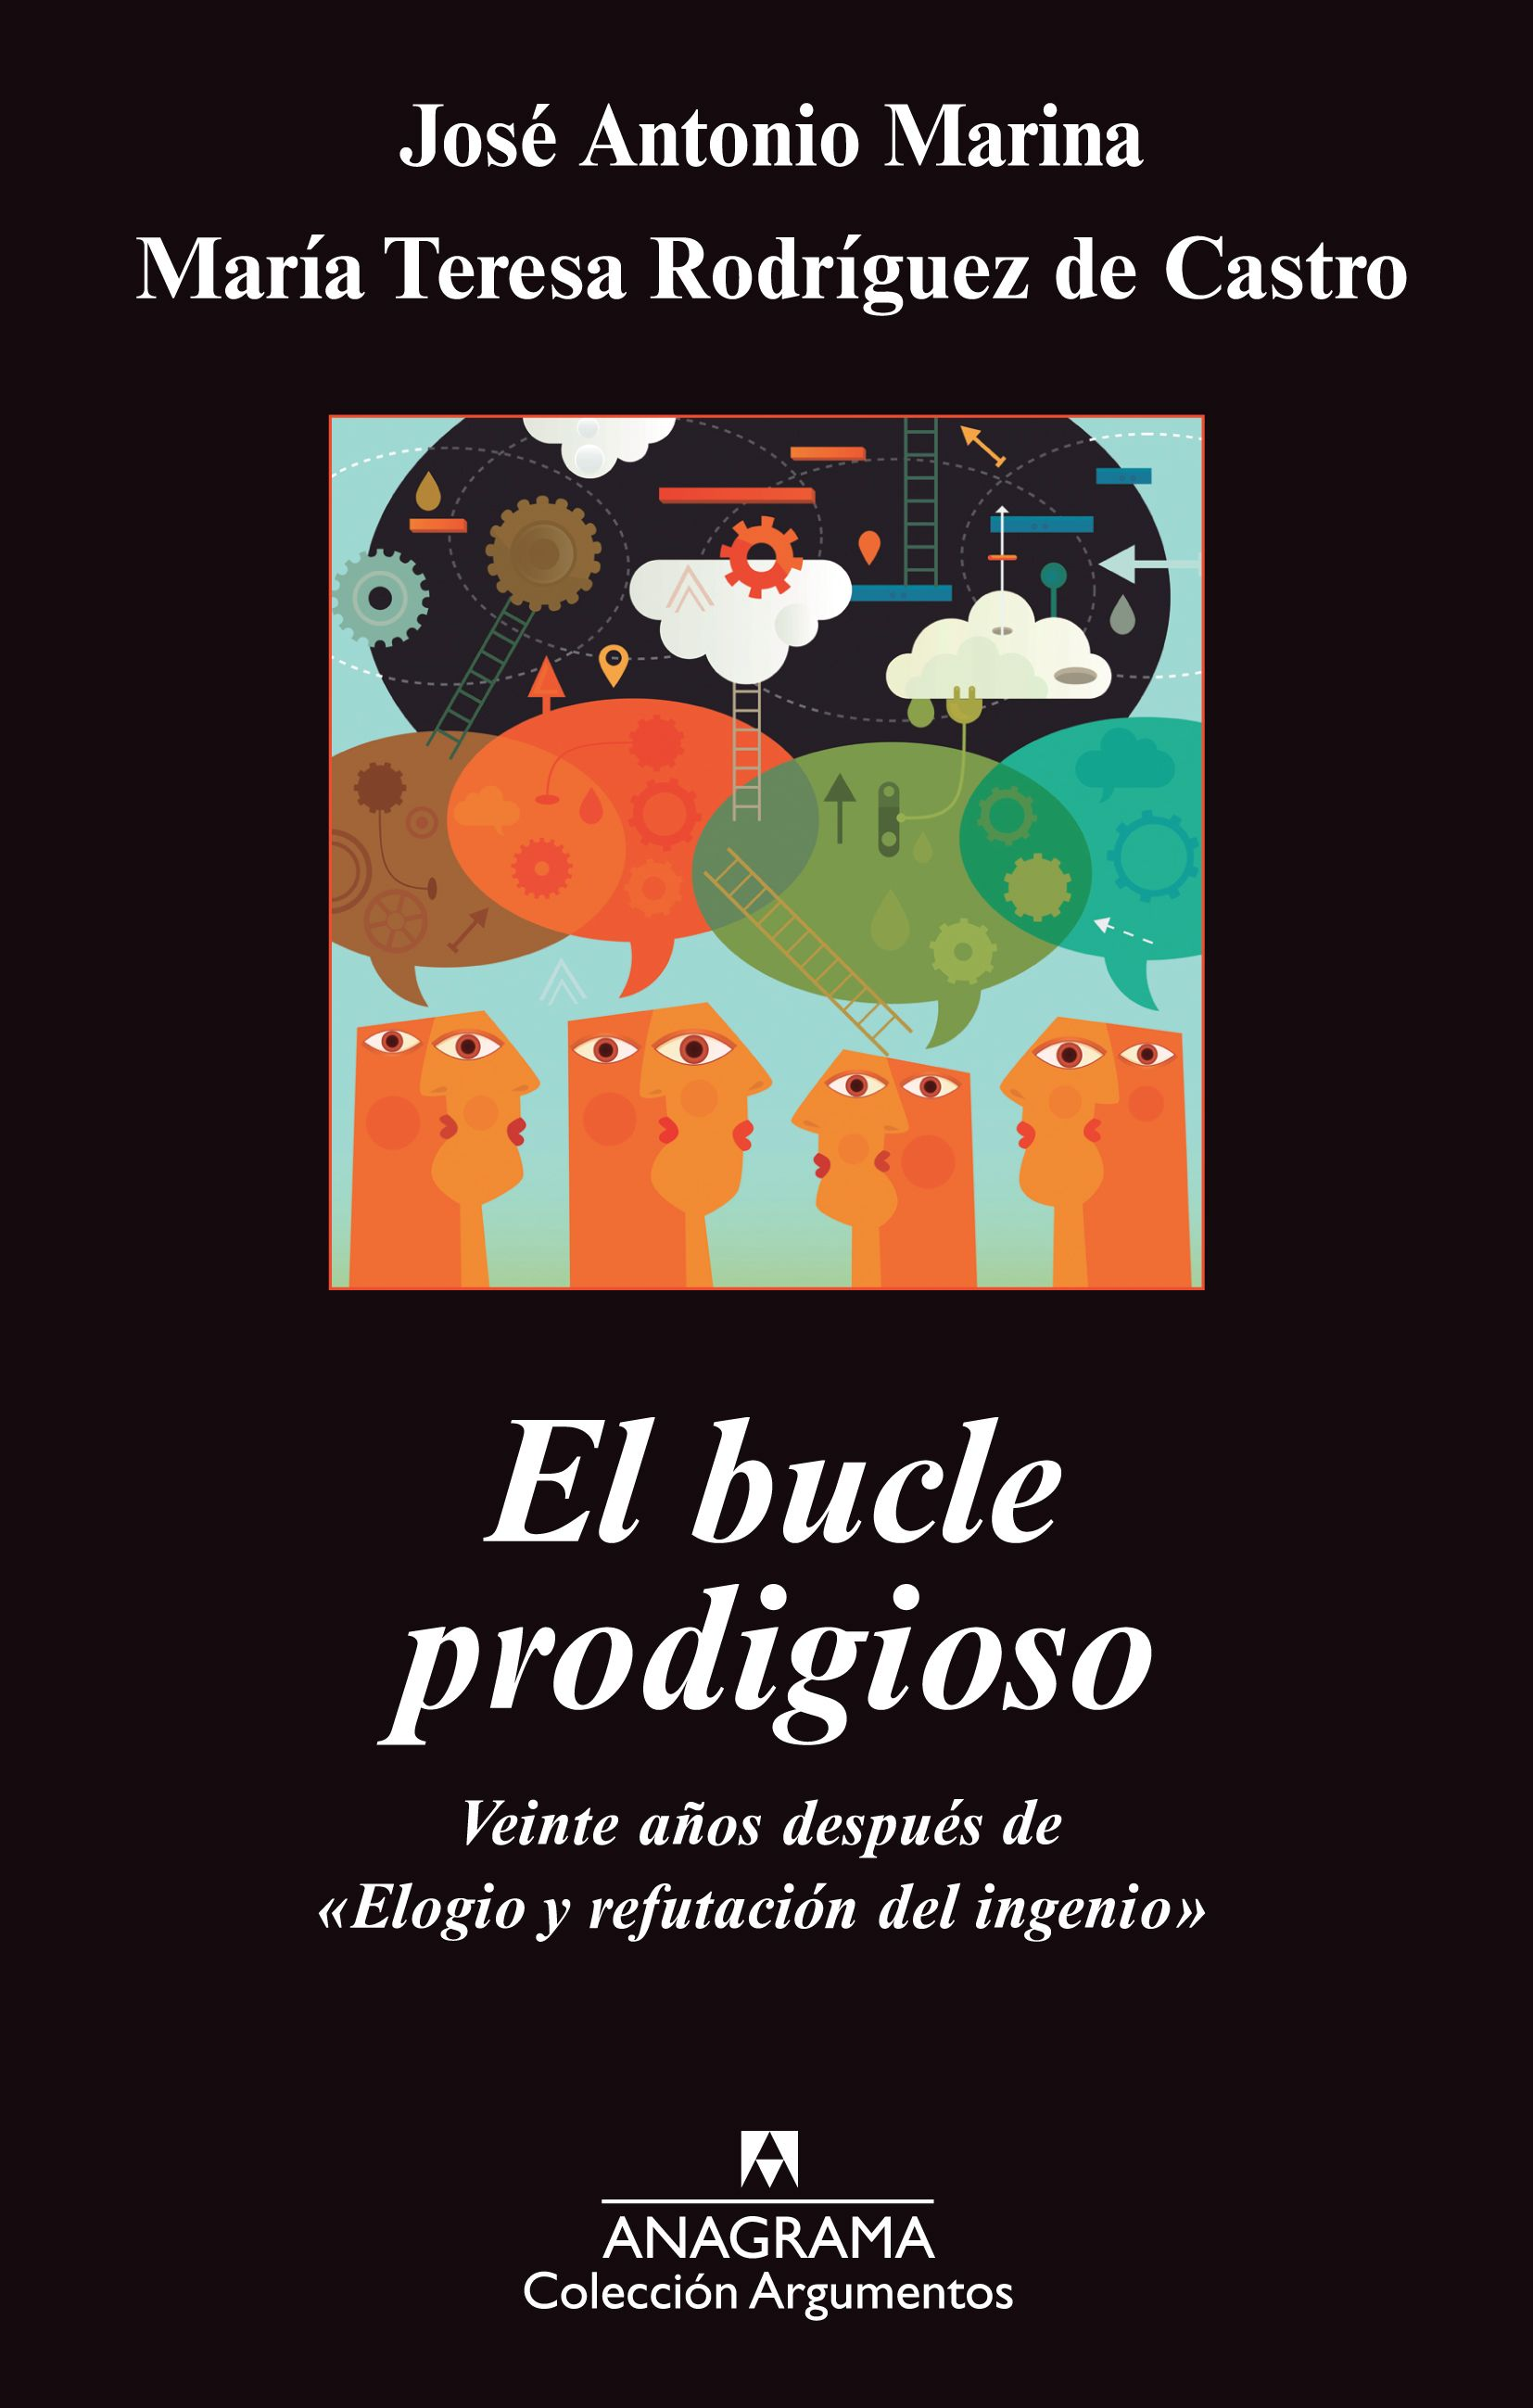 El bucle prodigioso - Editorial Anagrama